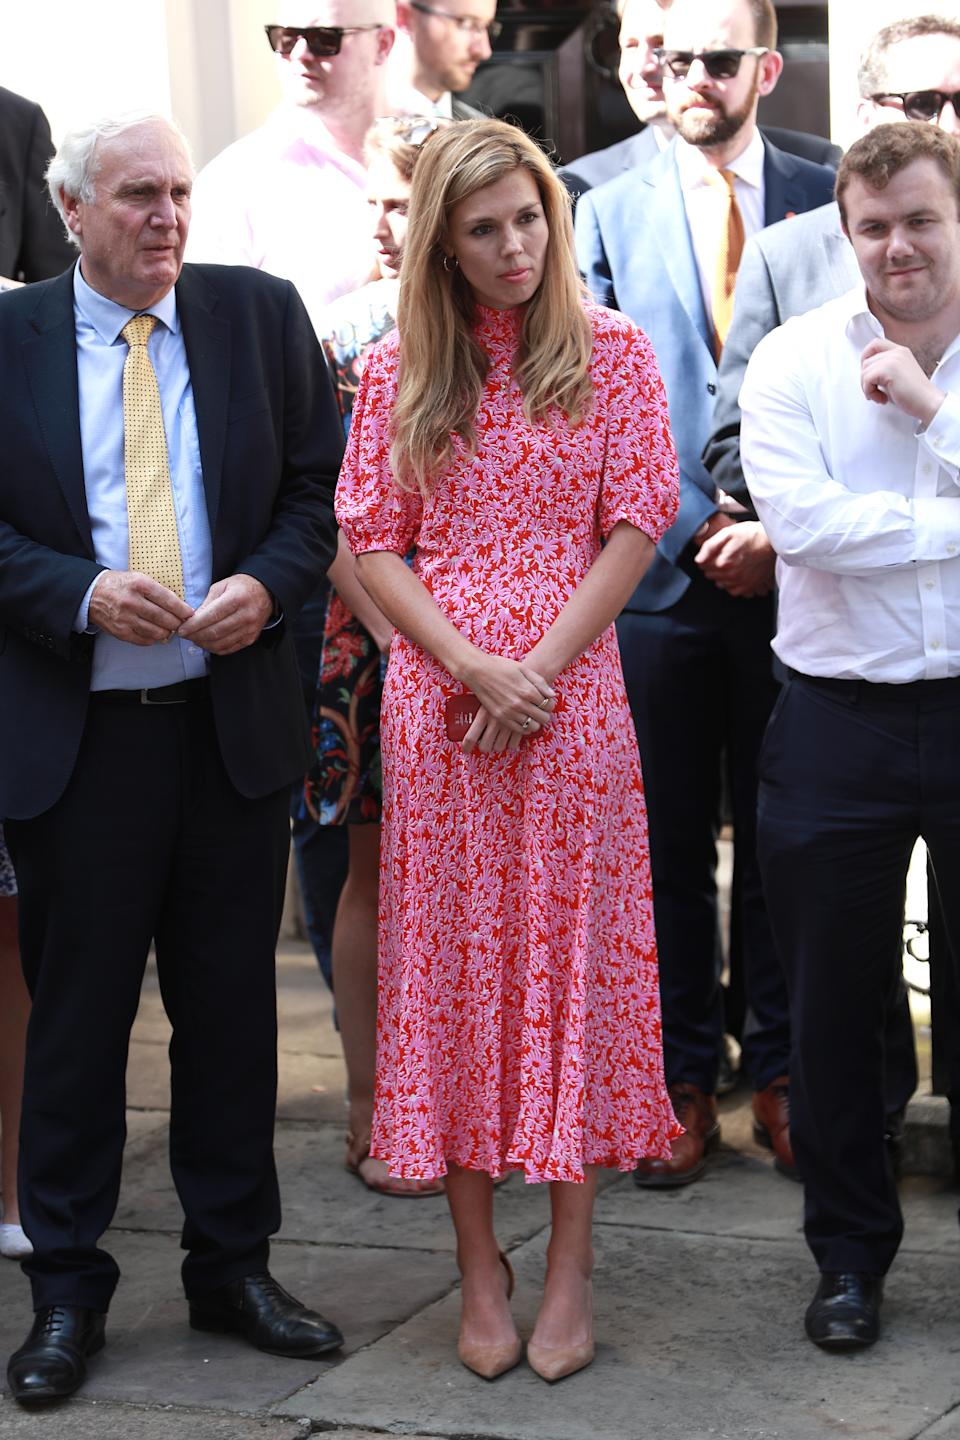 Carrie opted for a bright pink and red floral midi dress from British label Ghost for her debut appearance at No.10 earlier this summer [Photo: Getty Images]